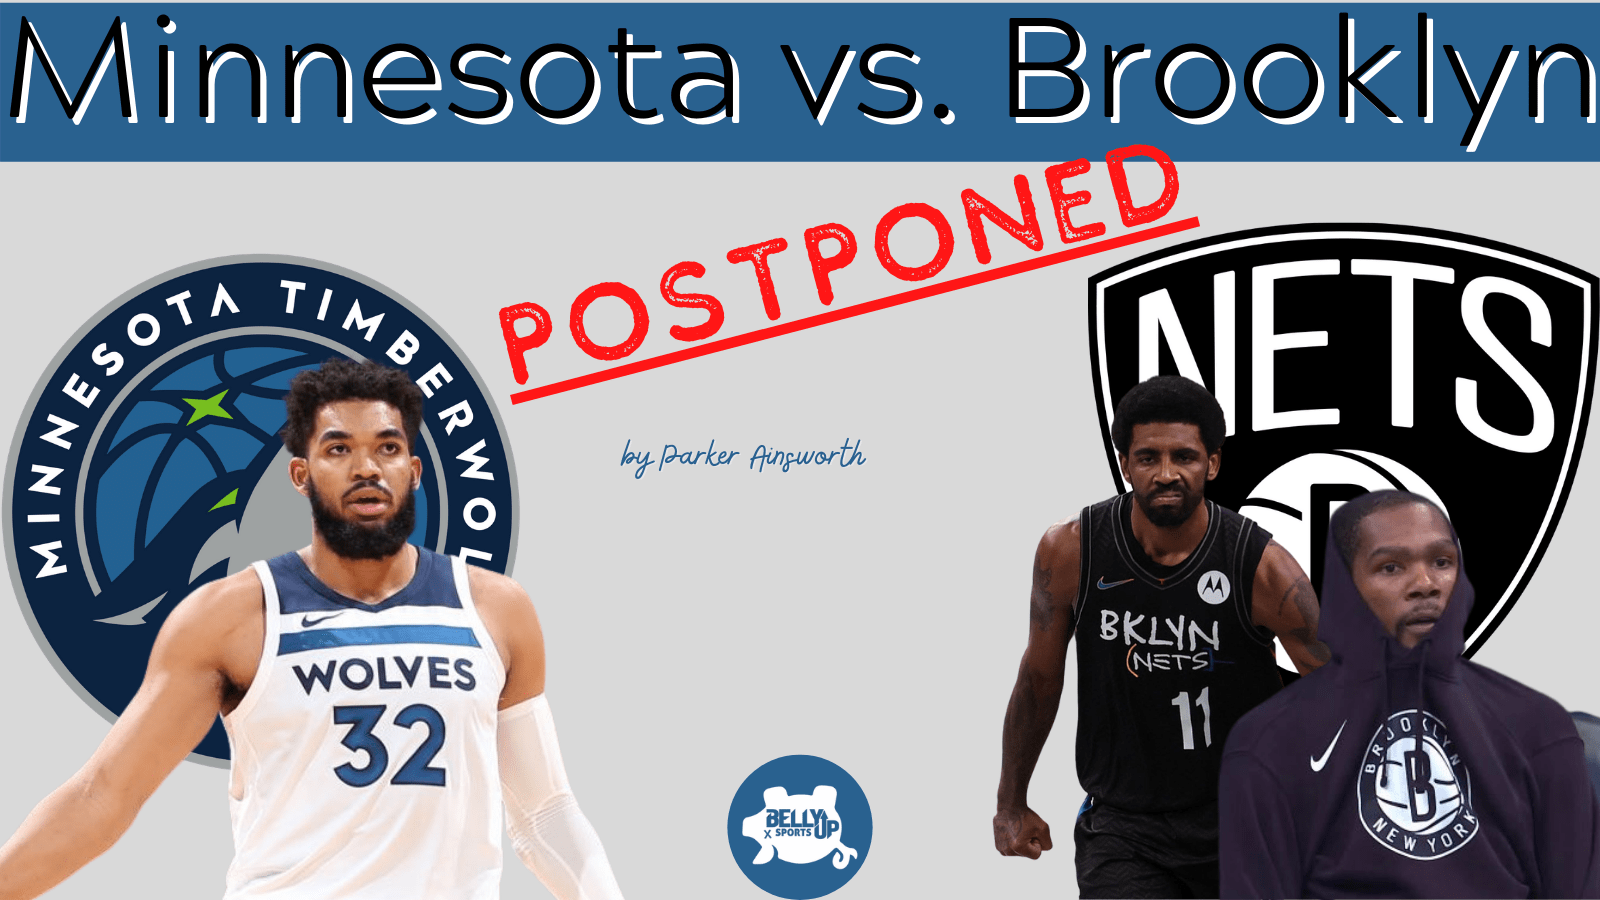 Minnesota vs. Brooklyn: Postponed